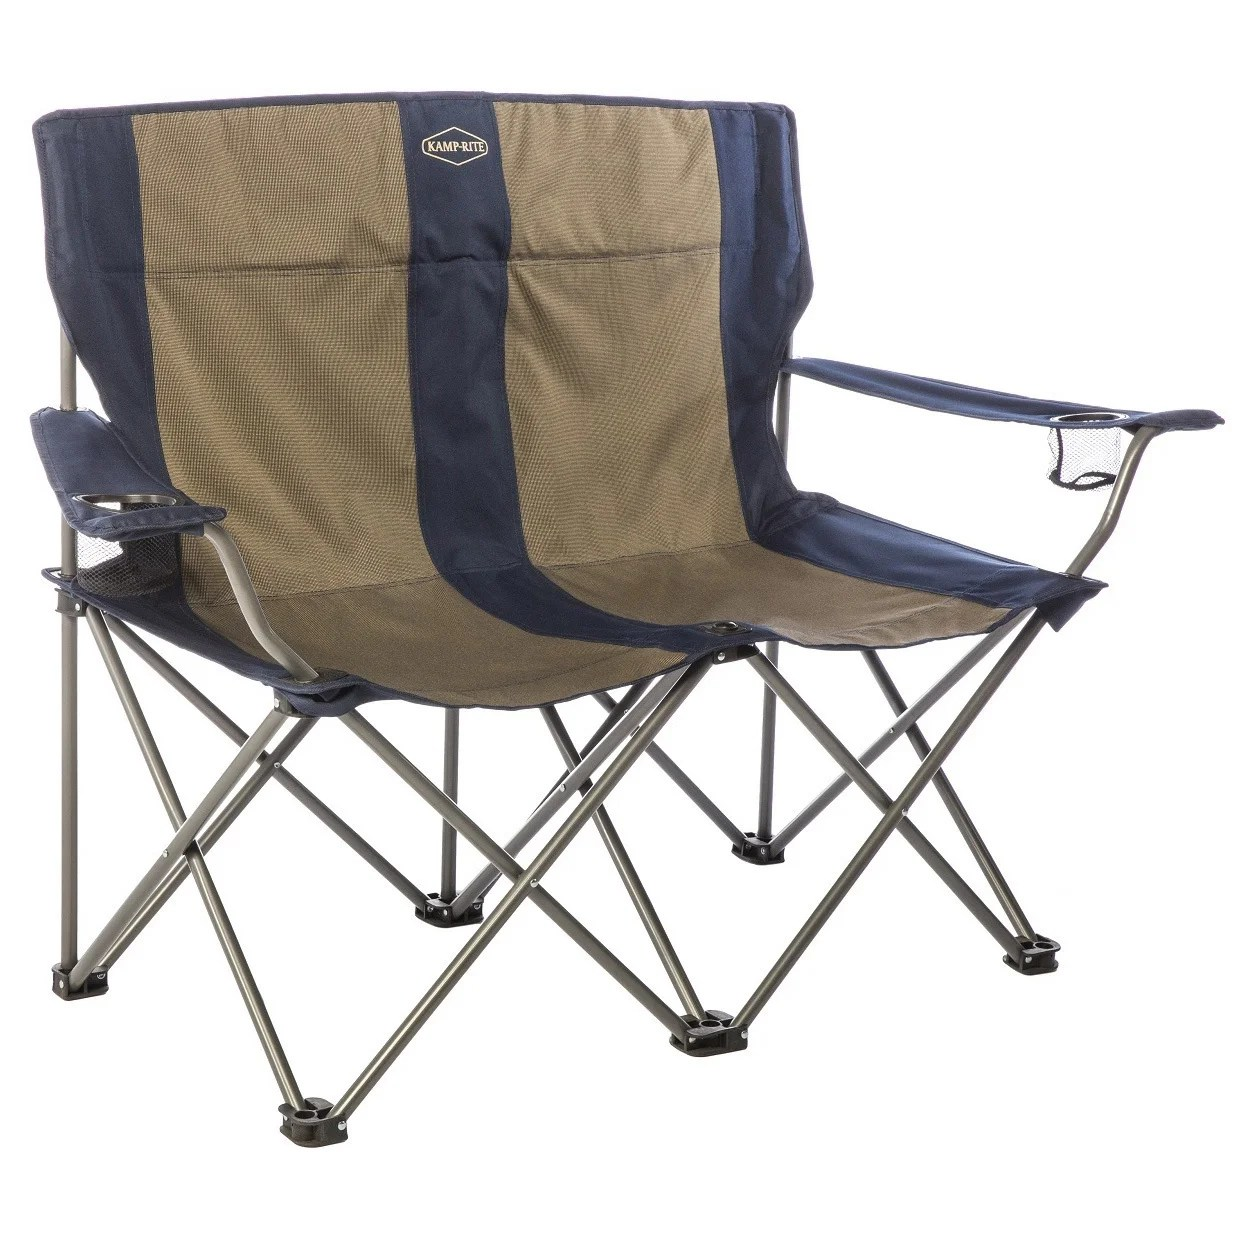 Double Camping Chair Kamp Rite Double Folding Chair With Arm Rests